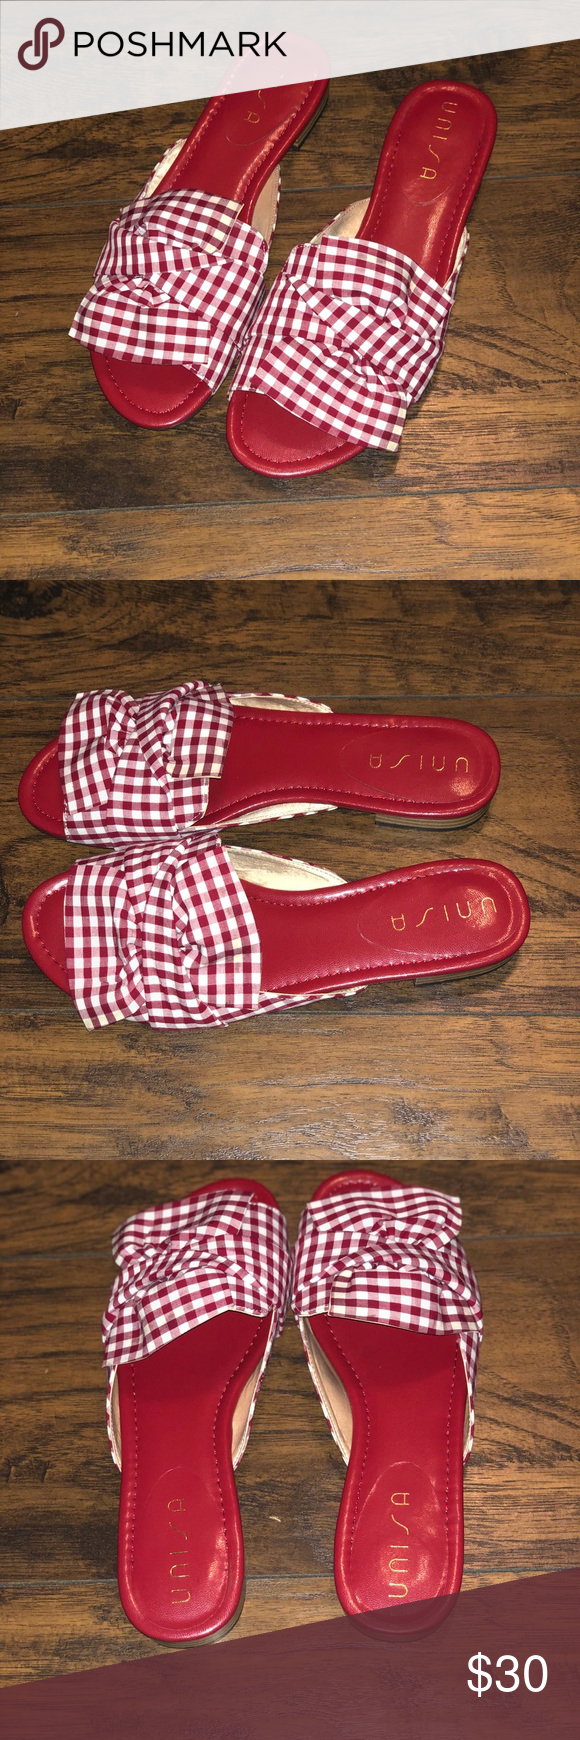 Unisa Red Checkered Sandals Unisa Red Checkered Sandals Brand New In Box Sz 9 1 2 Unisa Shoes Sandals With Images Red Checkered Sandals Brands Unisa